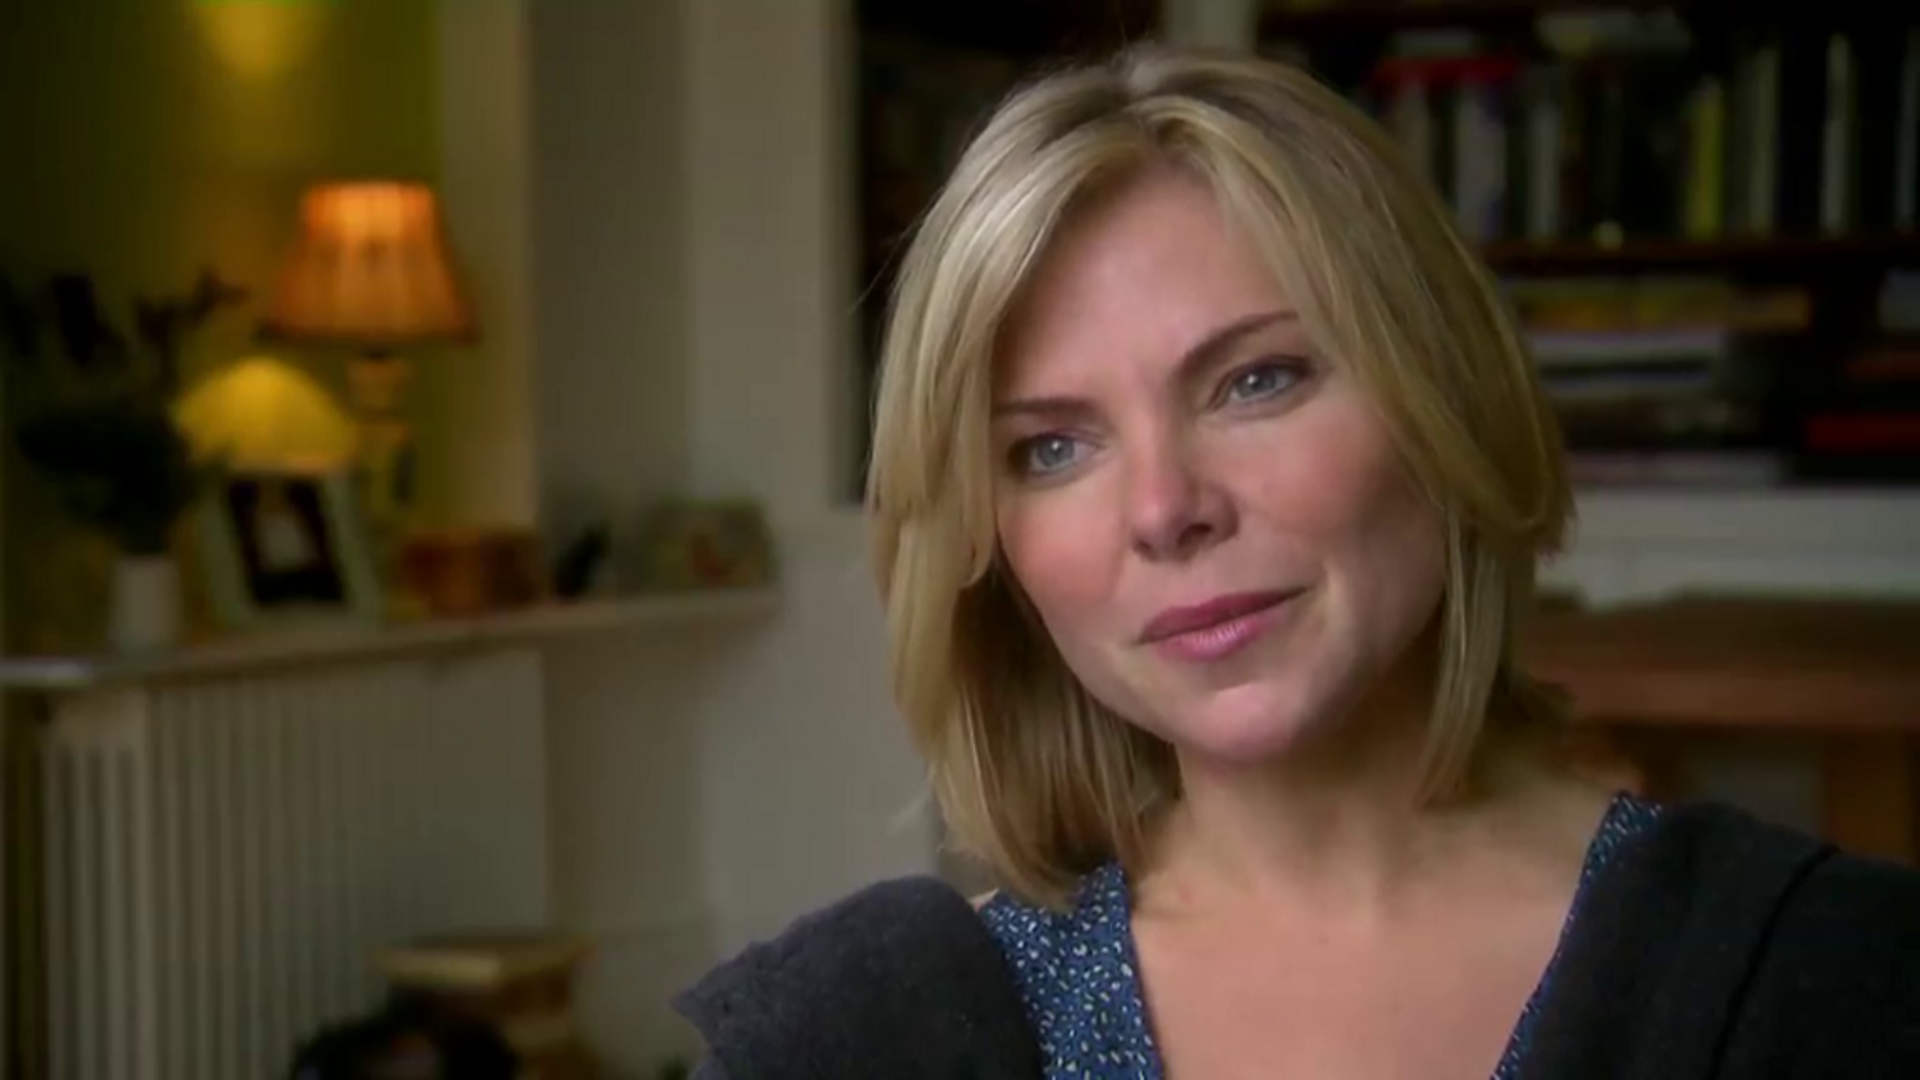 bbc one who do you think you are series samantha womack bbc one who do you think you are series 9 samantha womack samantha womack sets out to discover her family history